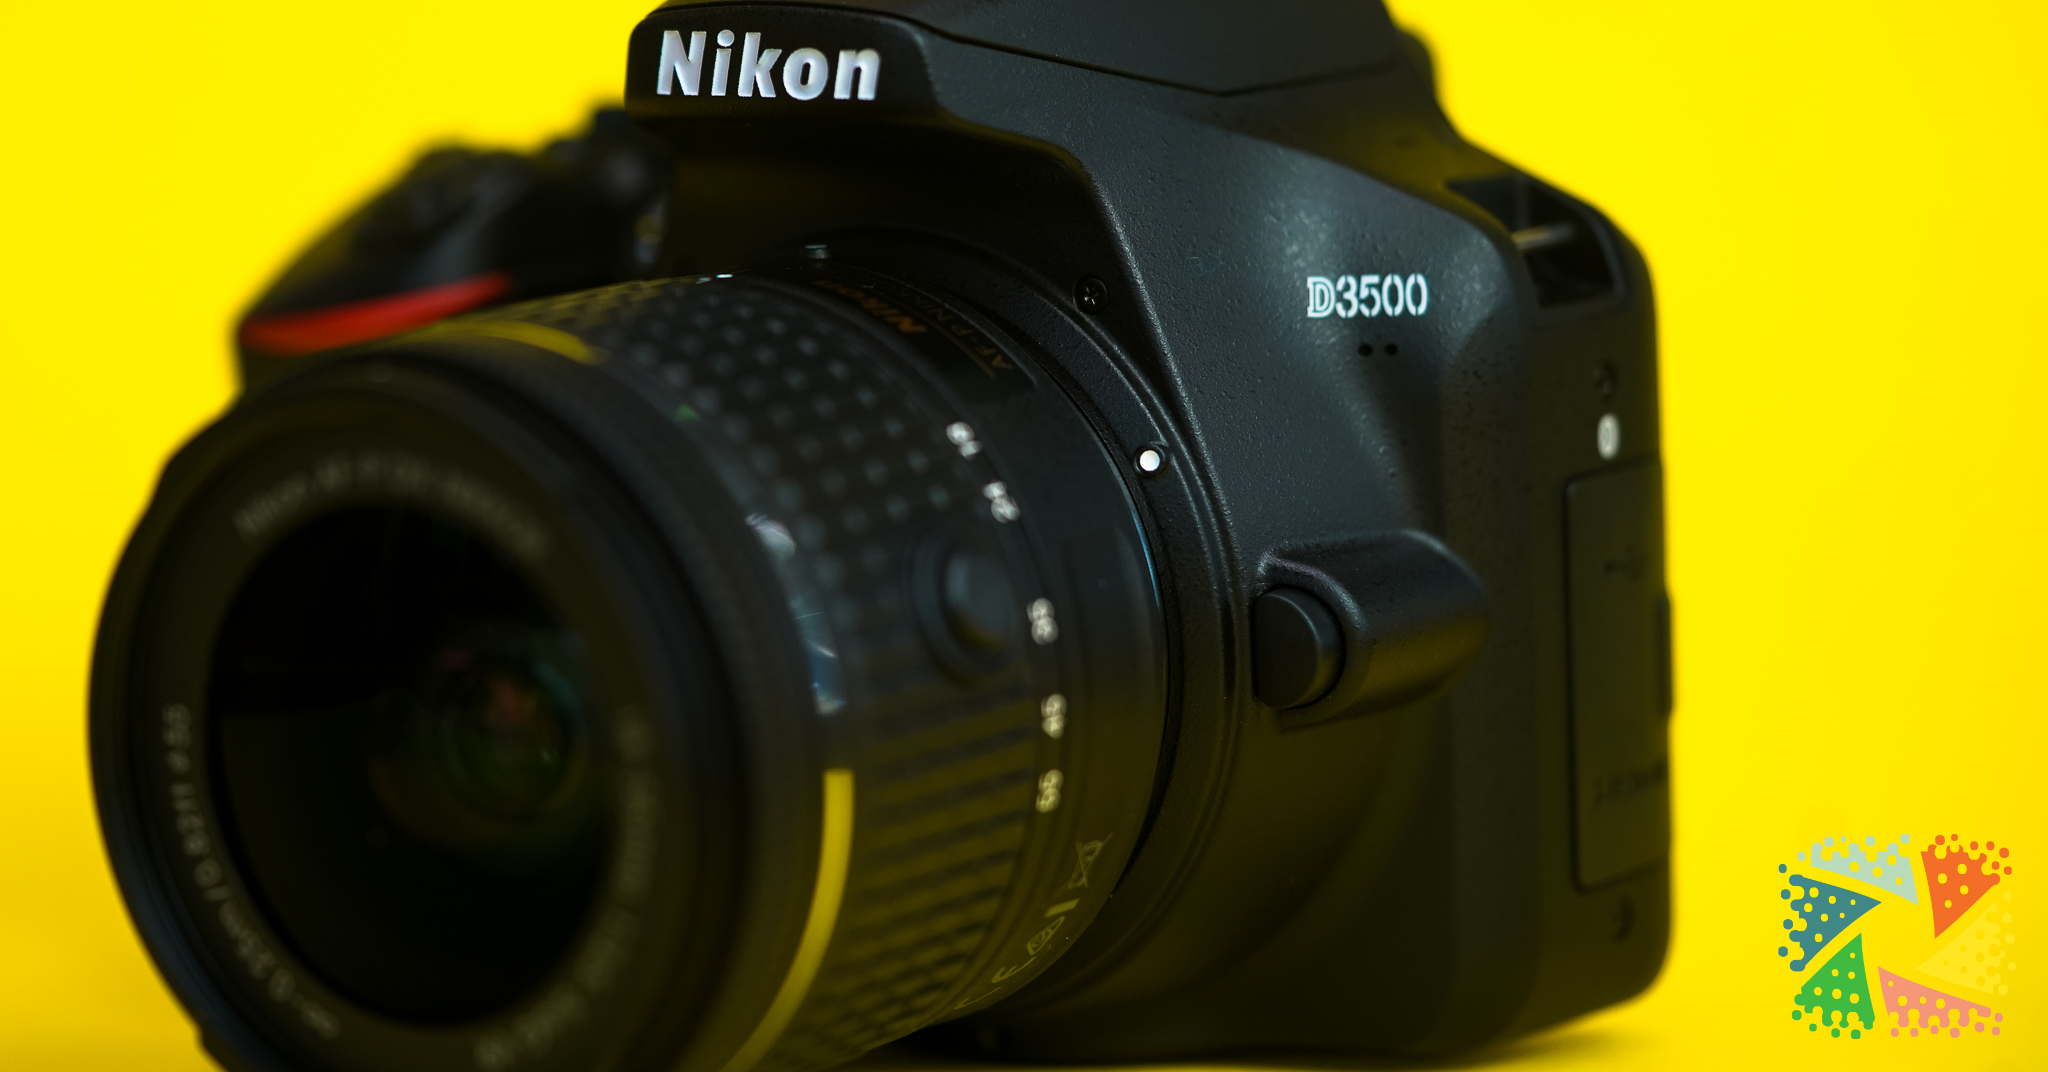 The Nikon D3500 - A DSLR that is easy like a Point & Shoot